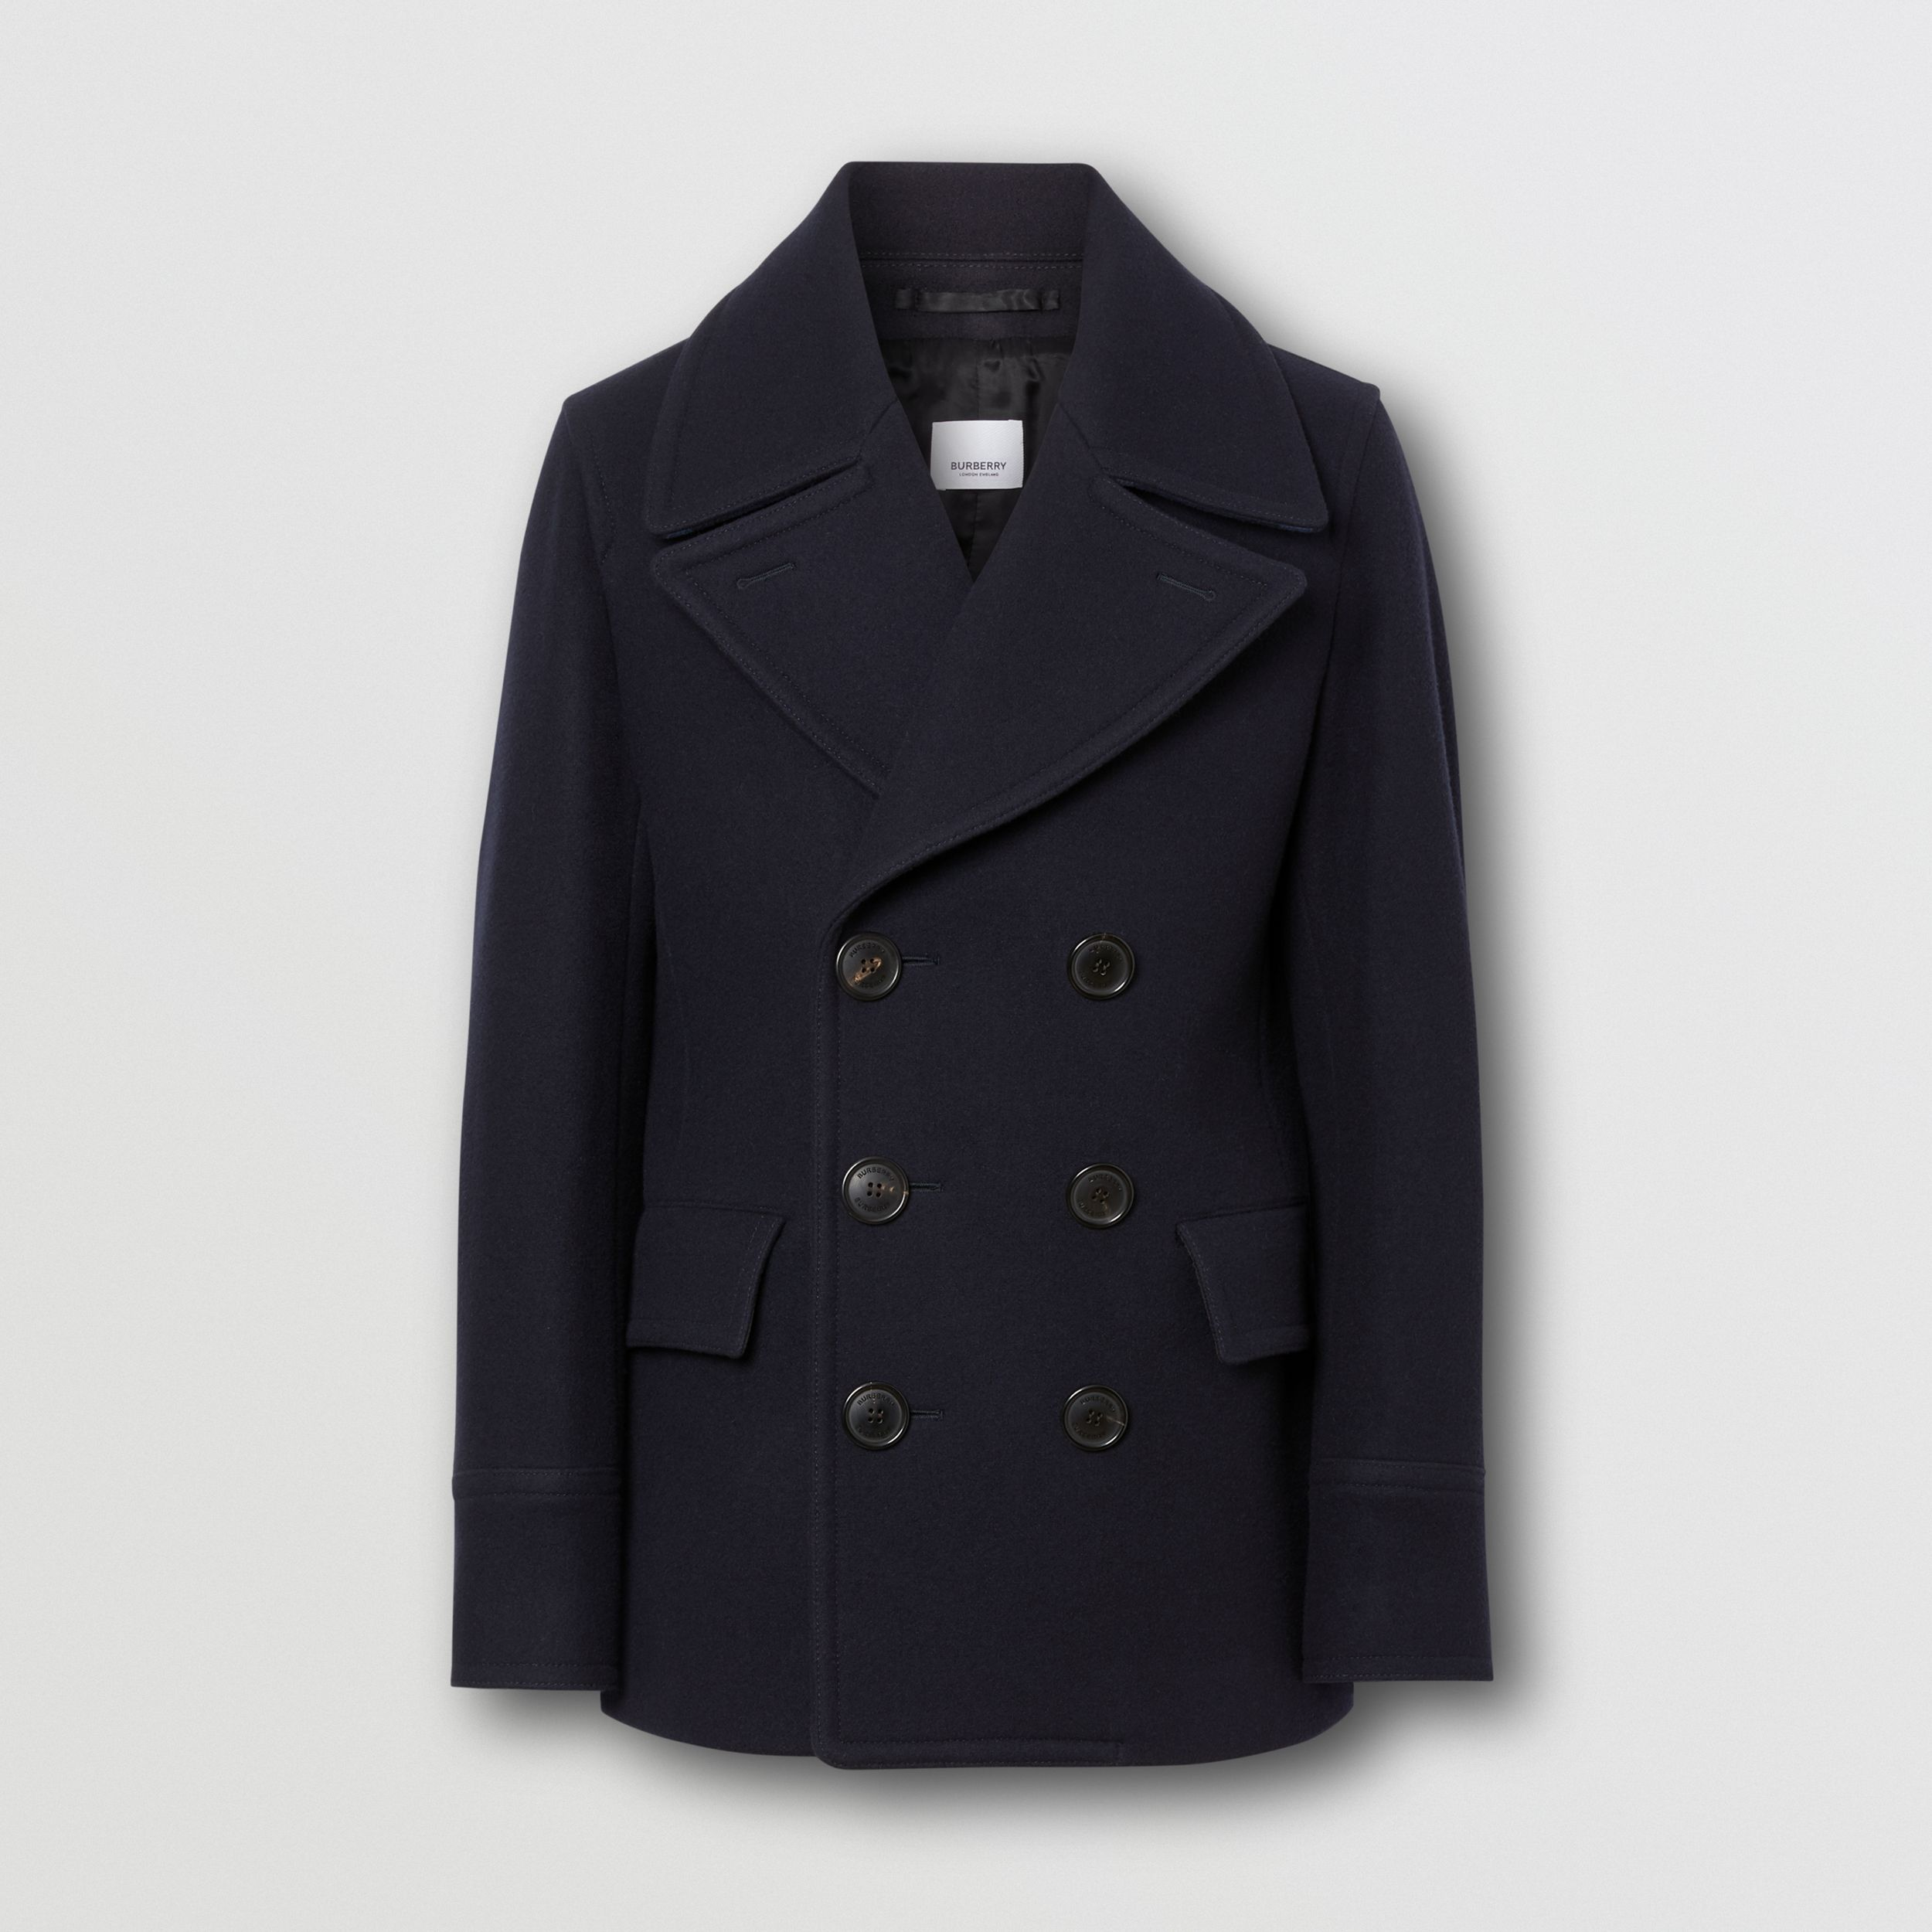 Wool Blend Pea Coat in Navy - Men | Burberry - 4